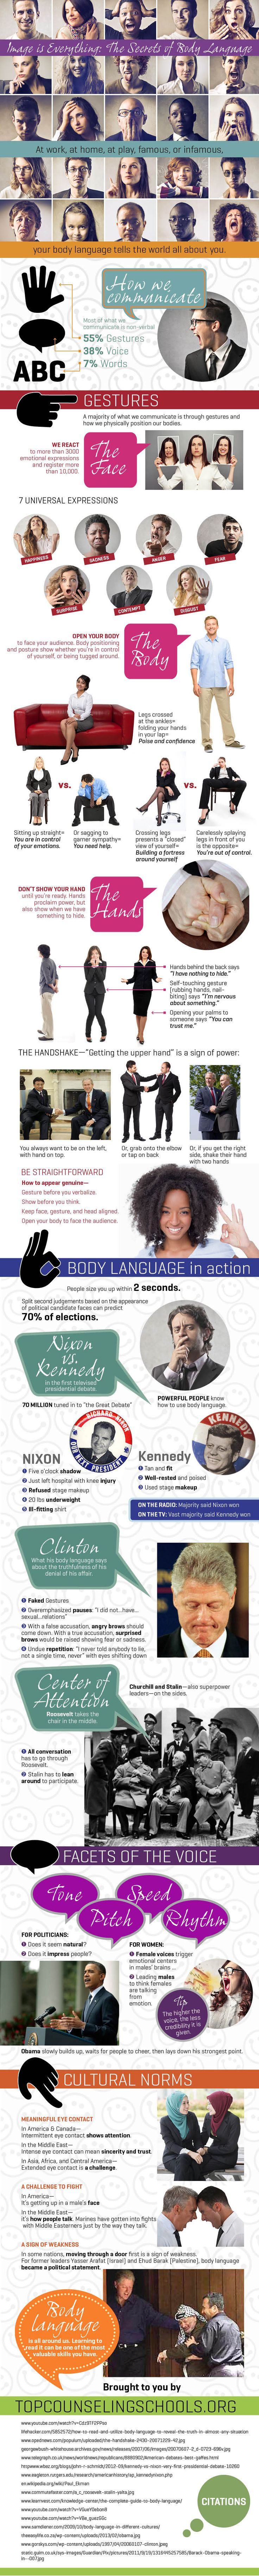 Body Language: An Amazing Infographic